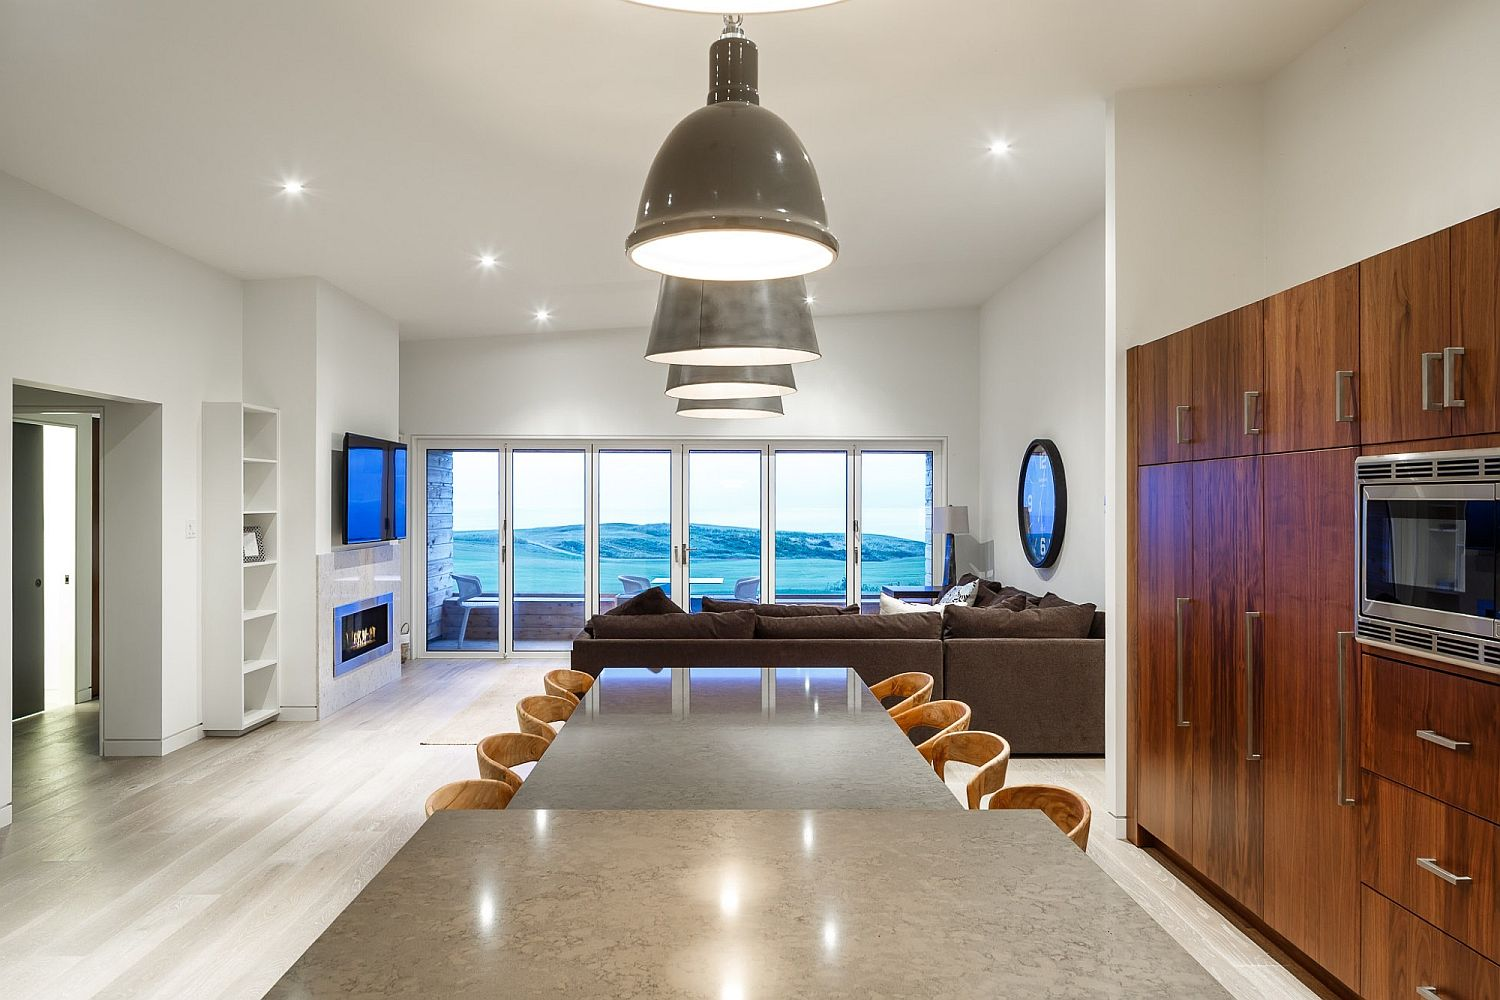 Expansive and open dining room next to living area with ocean views